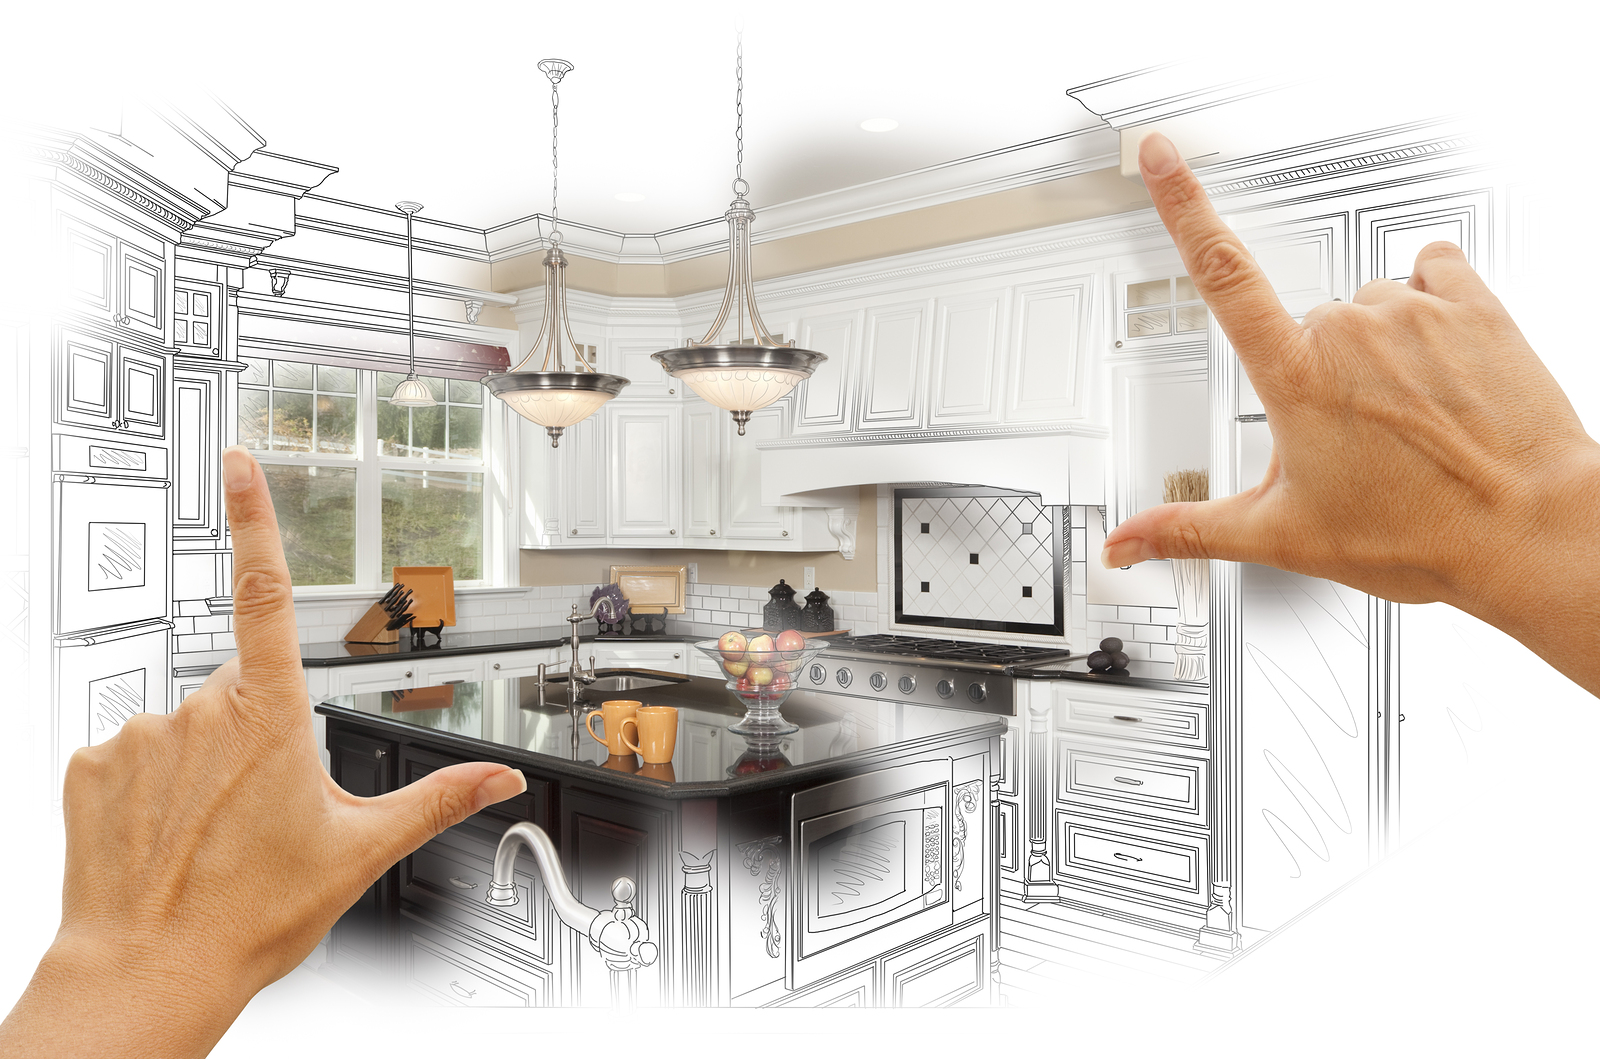 How To Use Animation to Attract Buyers to Your Home for Sale in Indian Trail